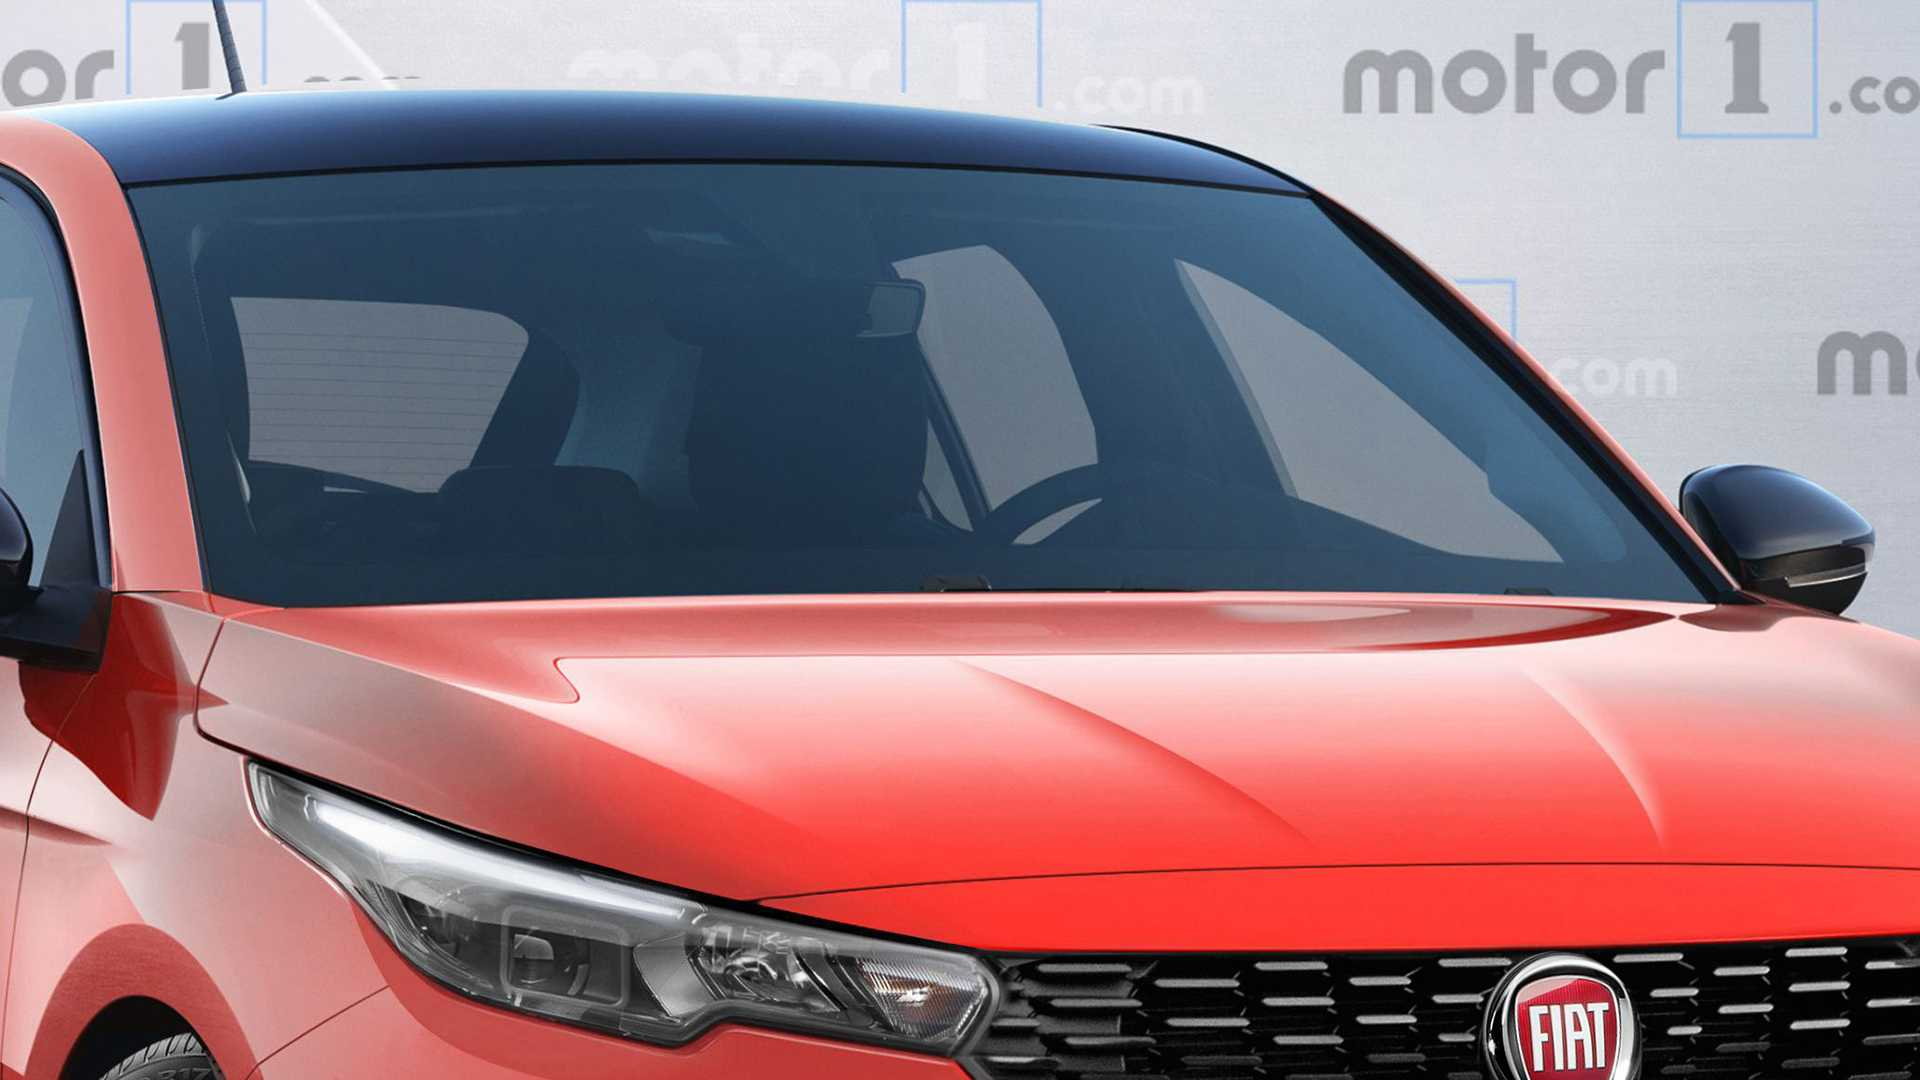 2021 Fiat Punto Specs and Review